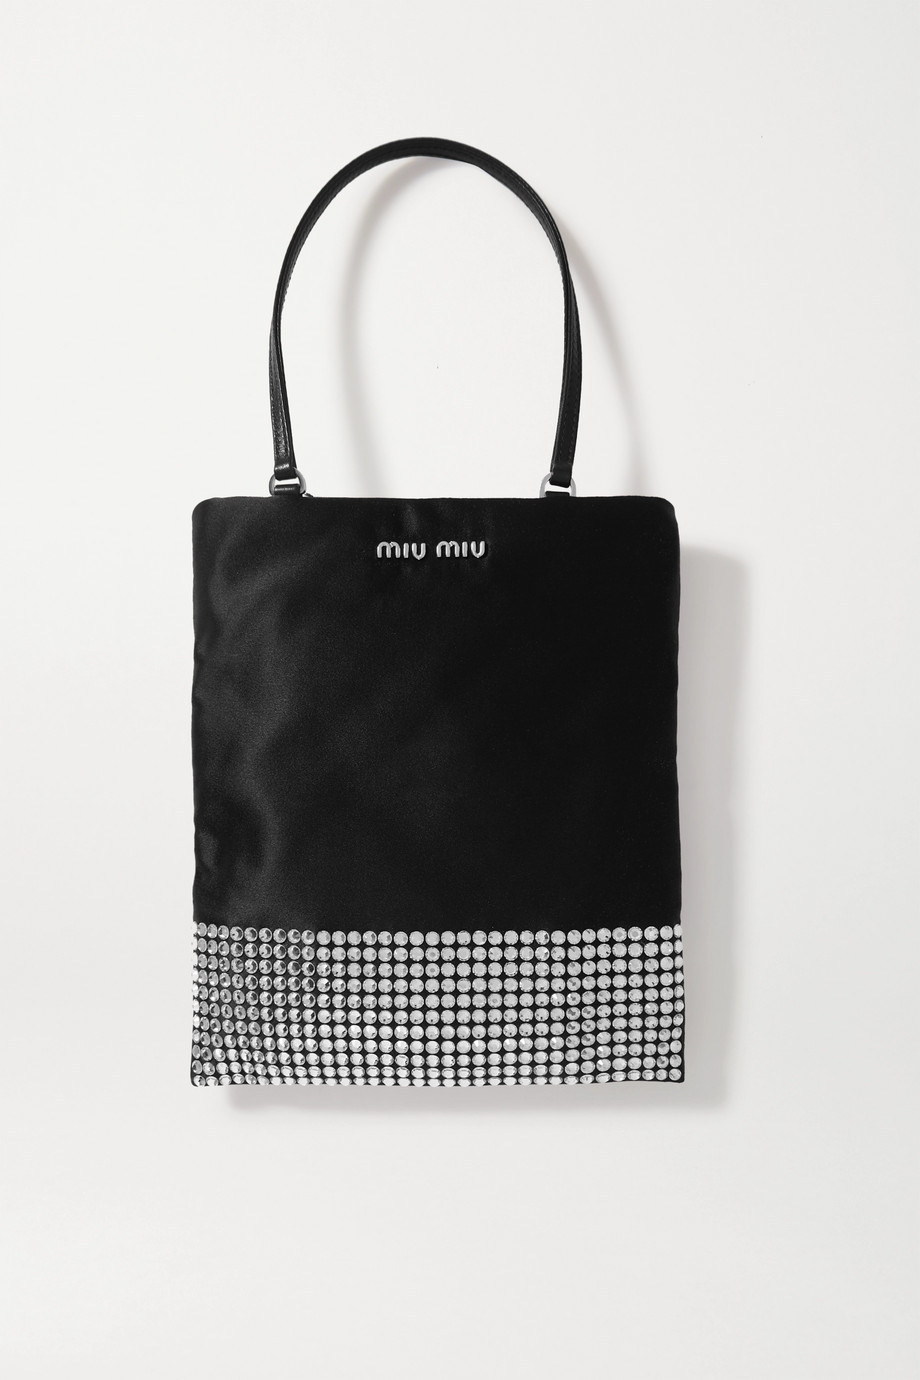 Miu Miu Sac à main en satin à cristaux Mini